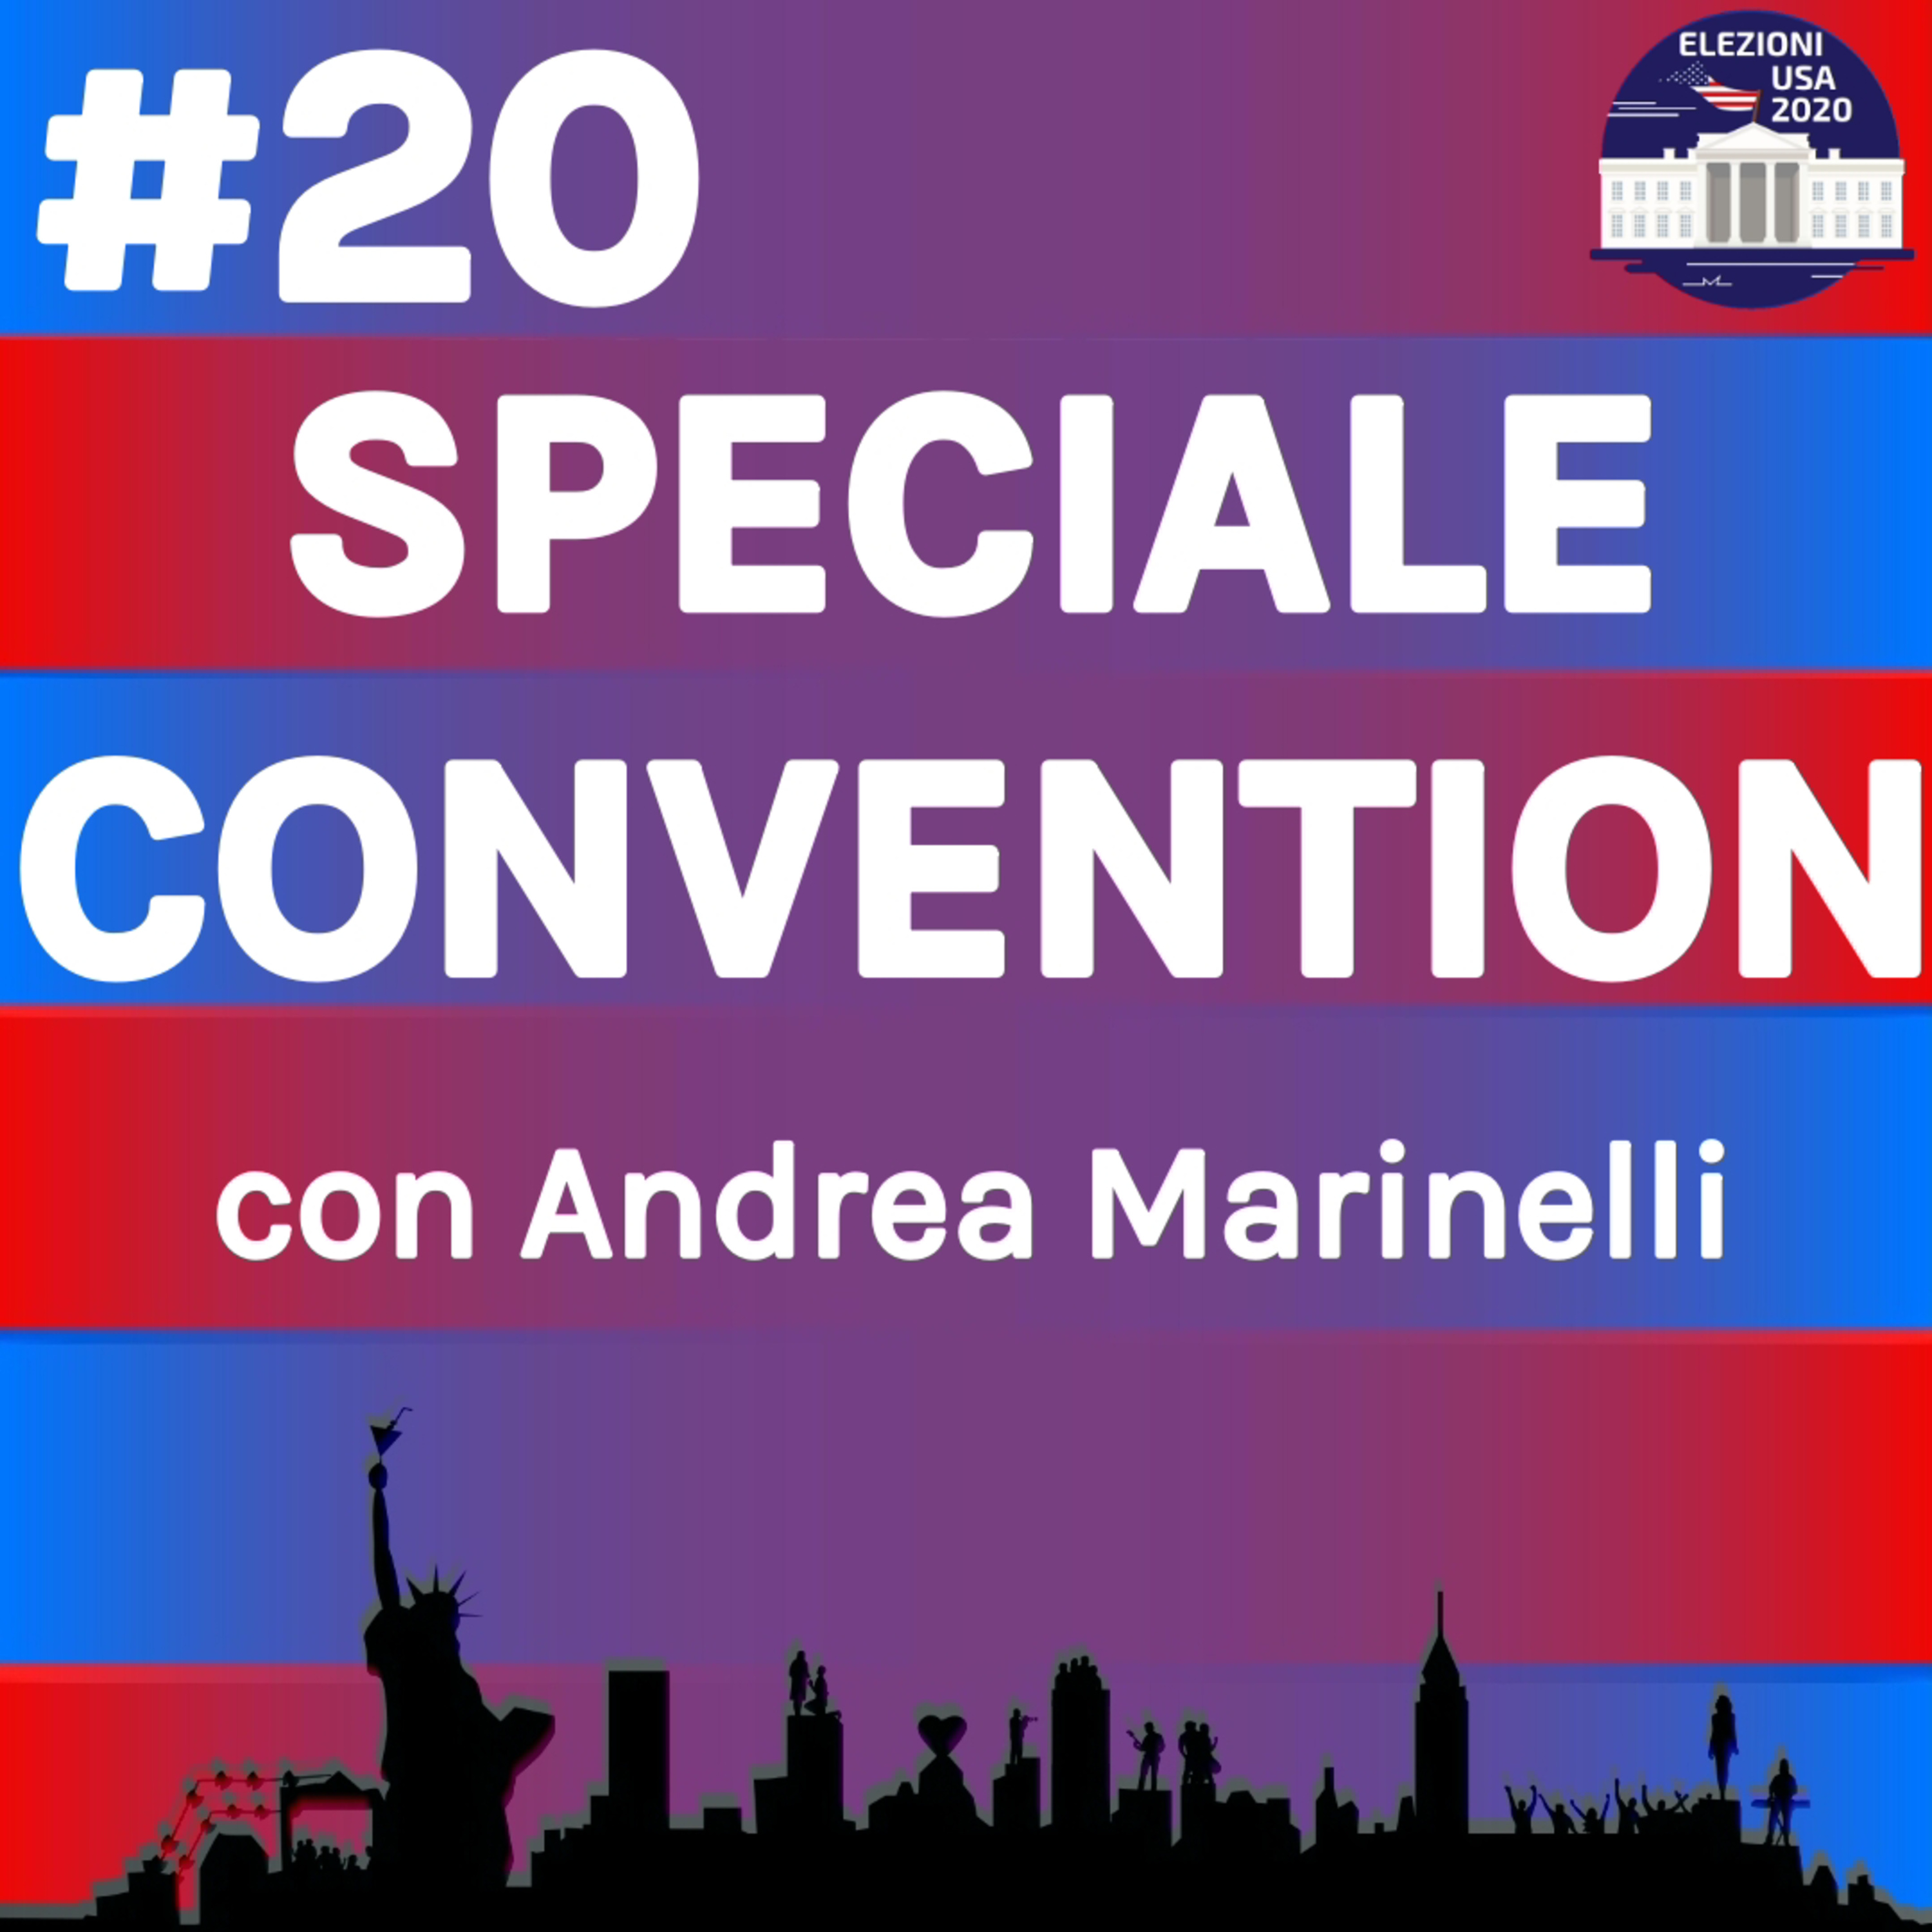 Speciale Convention con Andrea Marinelli